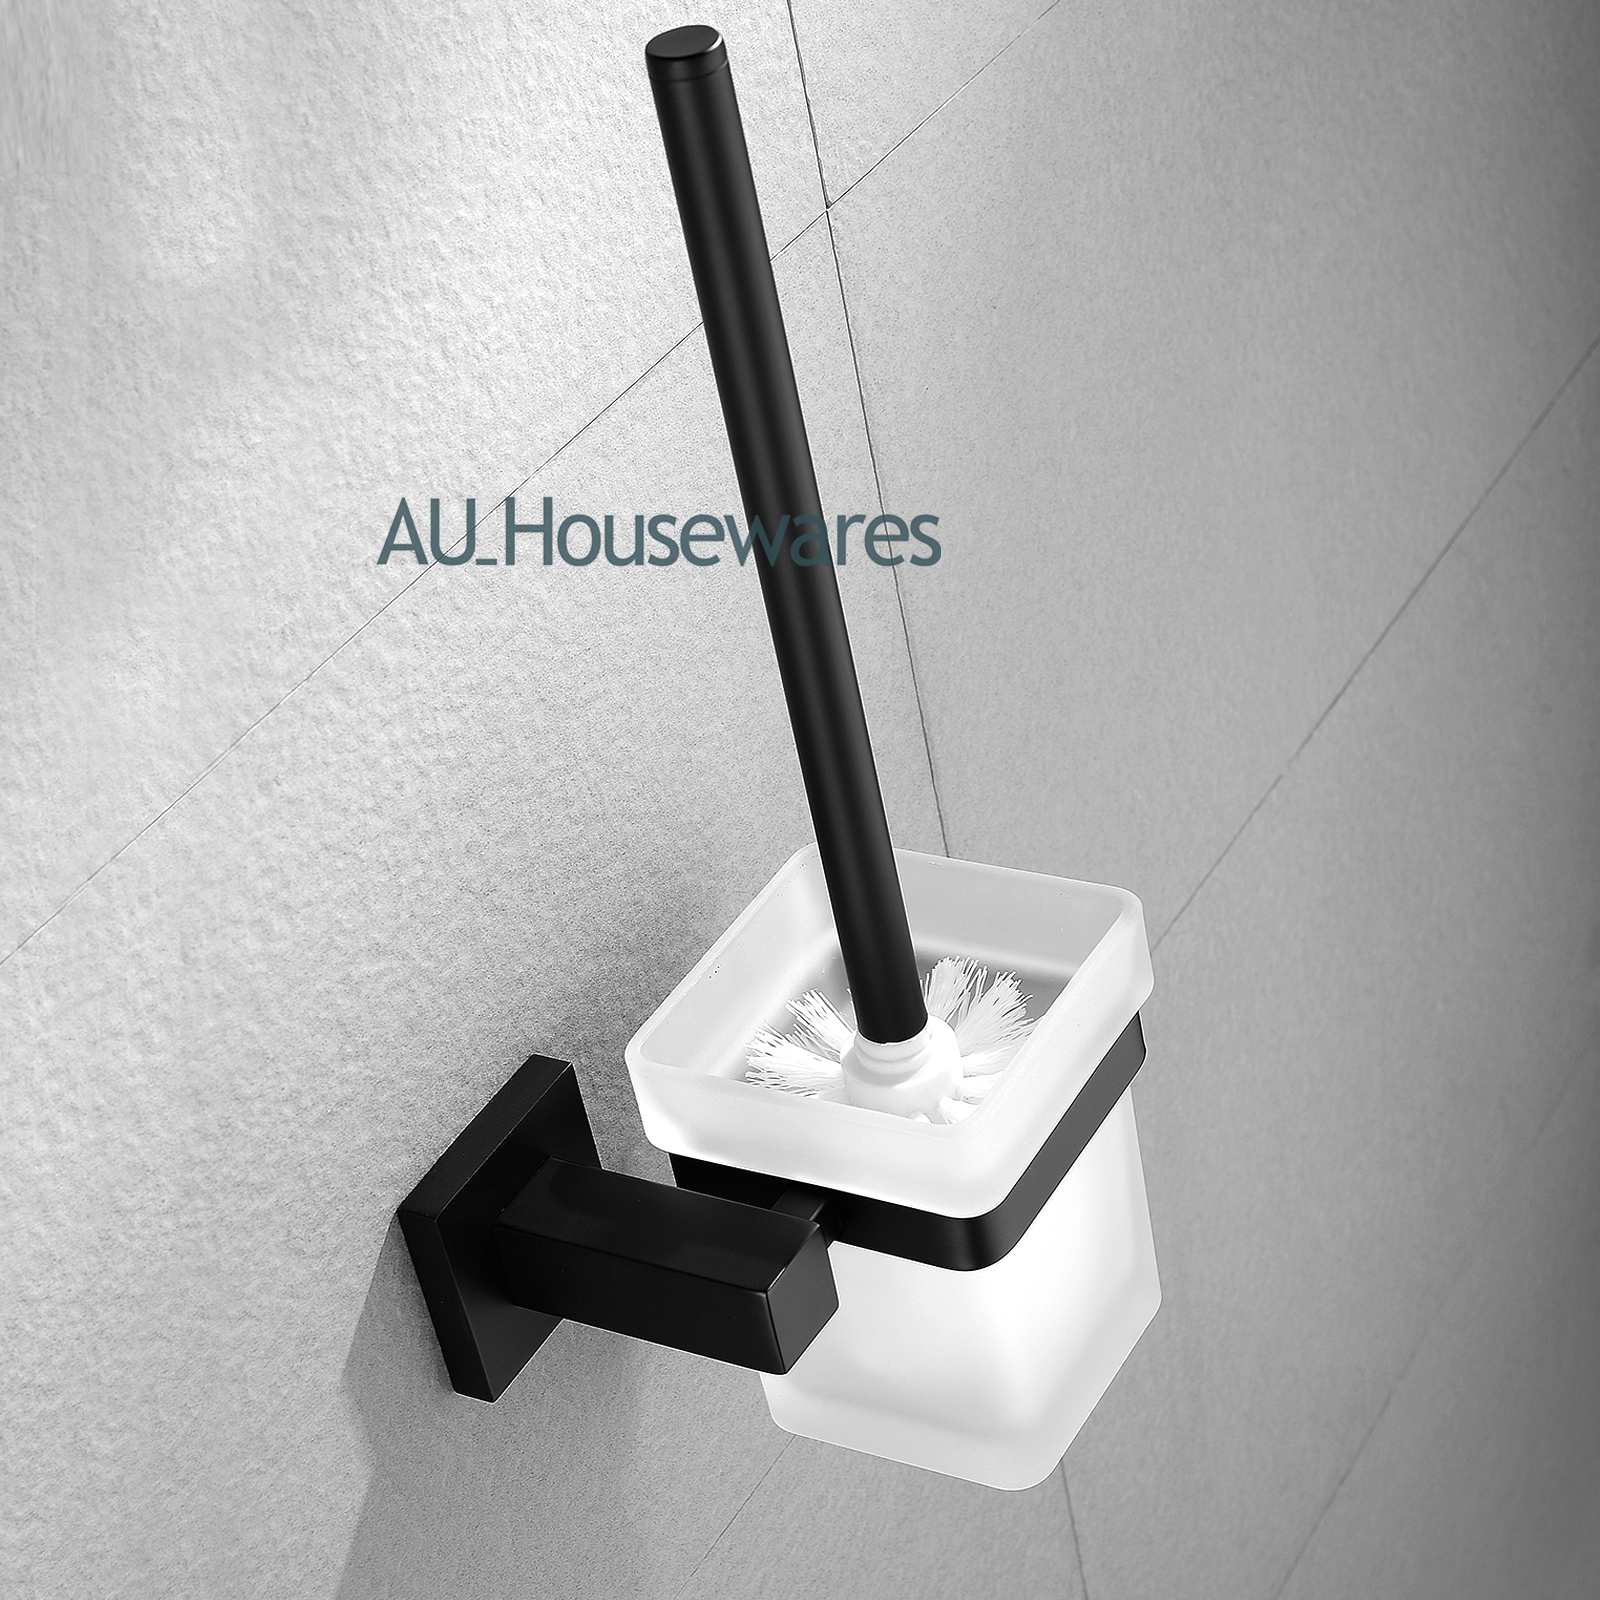 Black Ceramic Toilet Paper Holder Black Square Bathroom Accessory Sets Towel Rack Rail Glass